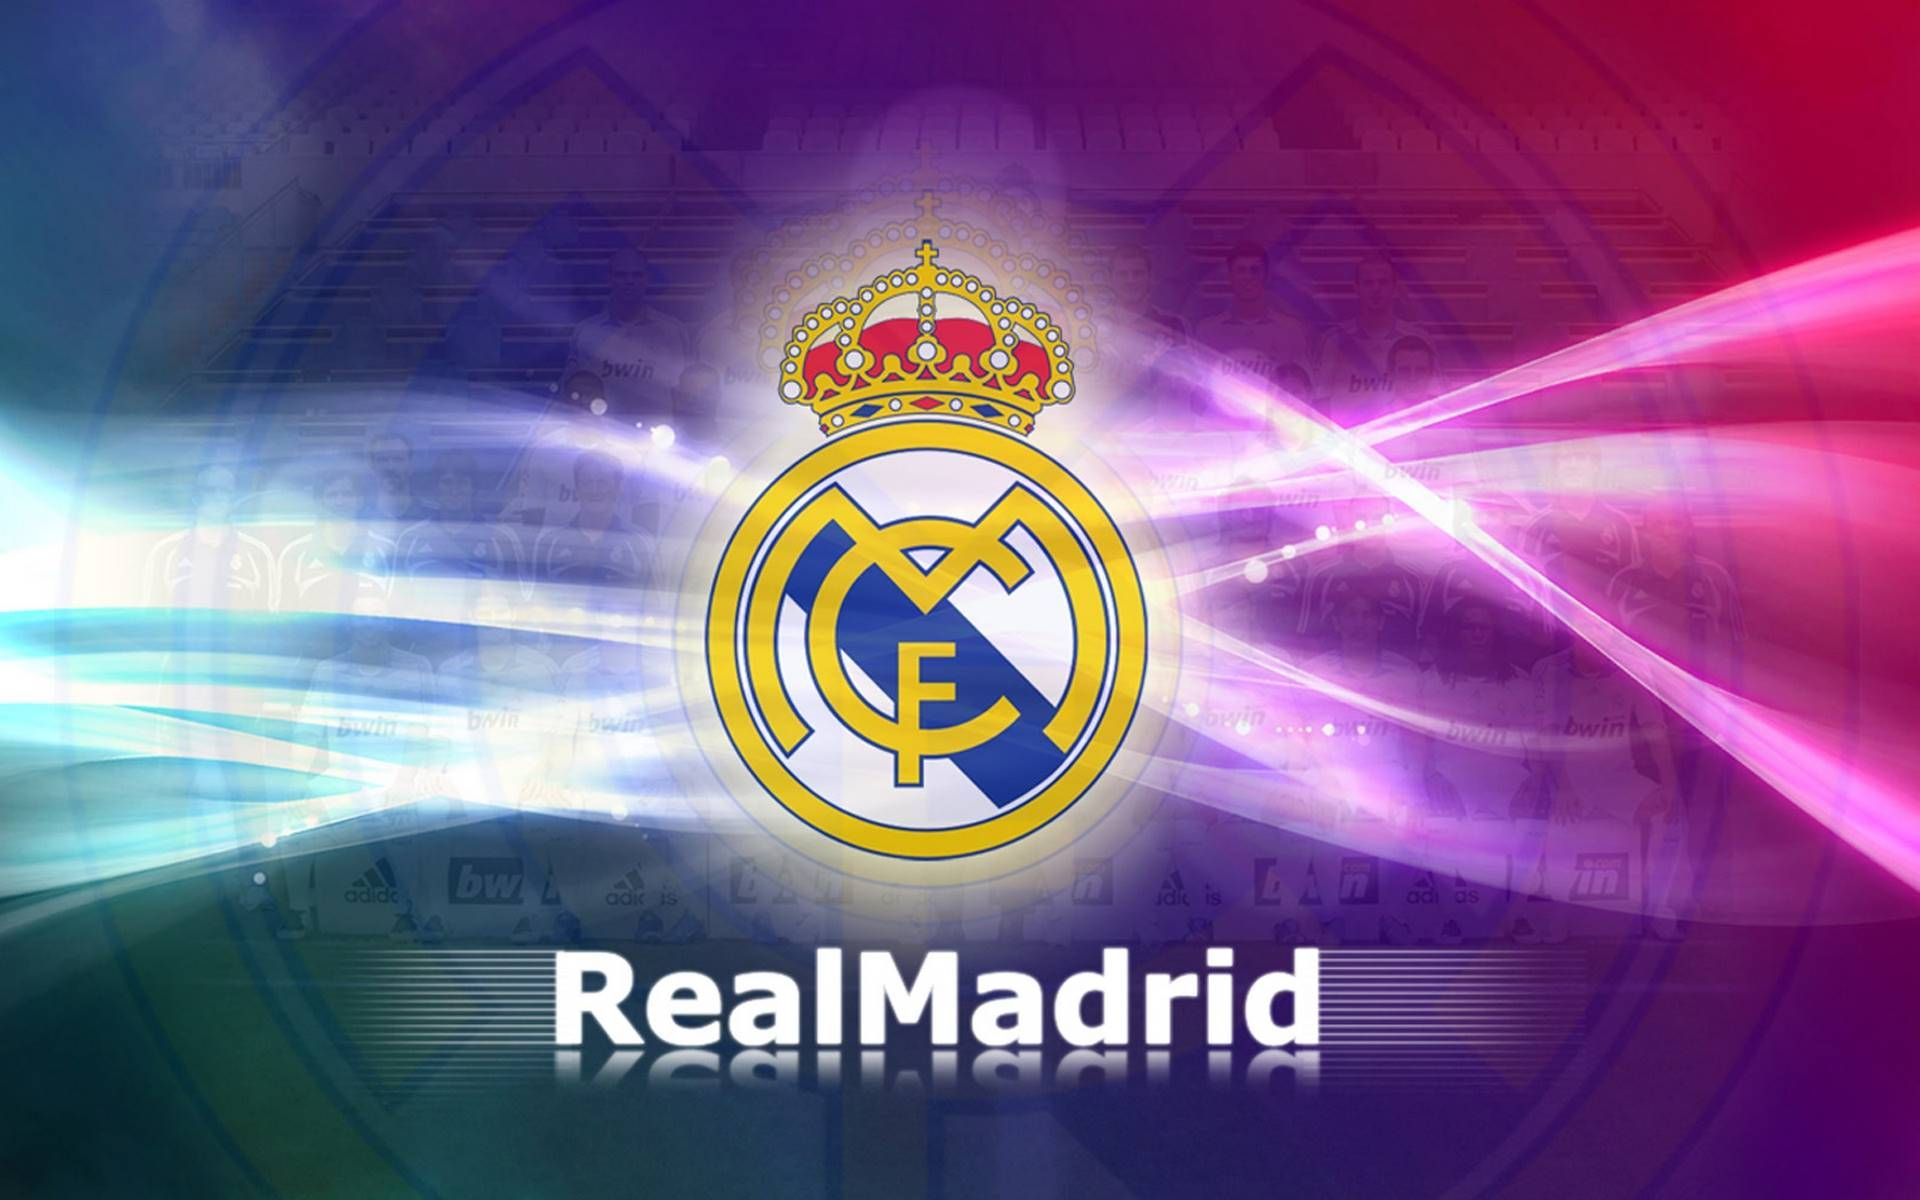 Image Result For Awesome Real Madrid Logo Wallpapers Hd X Real Madrid Wallpaper Logo And Real Madrid Logo Wallpapers Hd Hd Desktop Wallpapers Wallpaper Hd P Free Download X